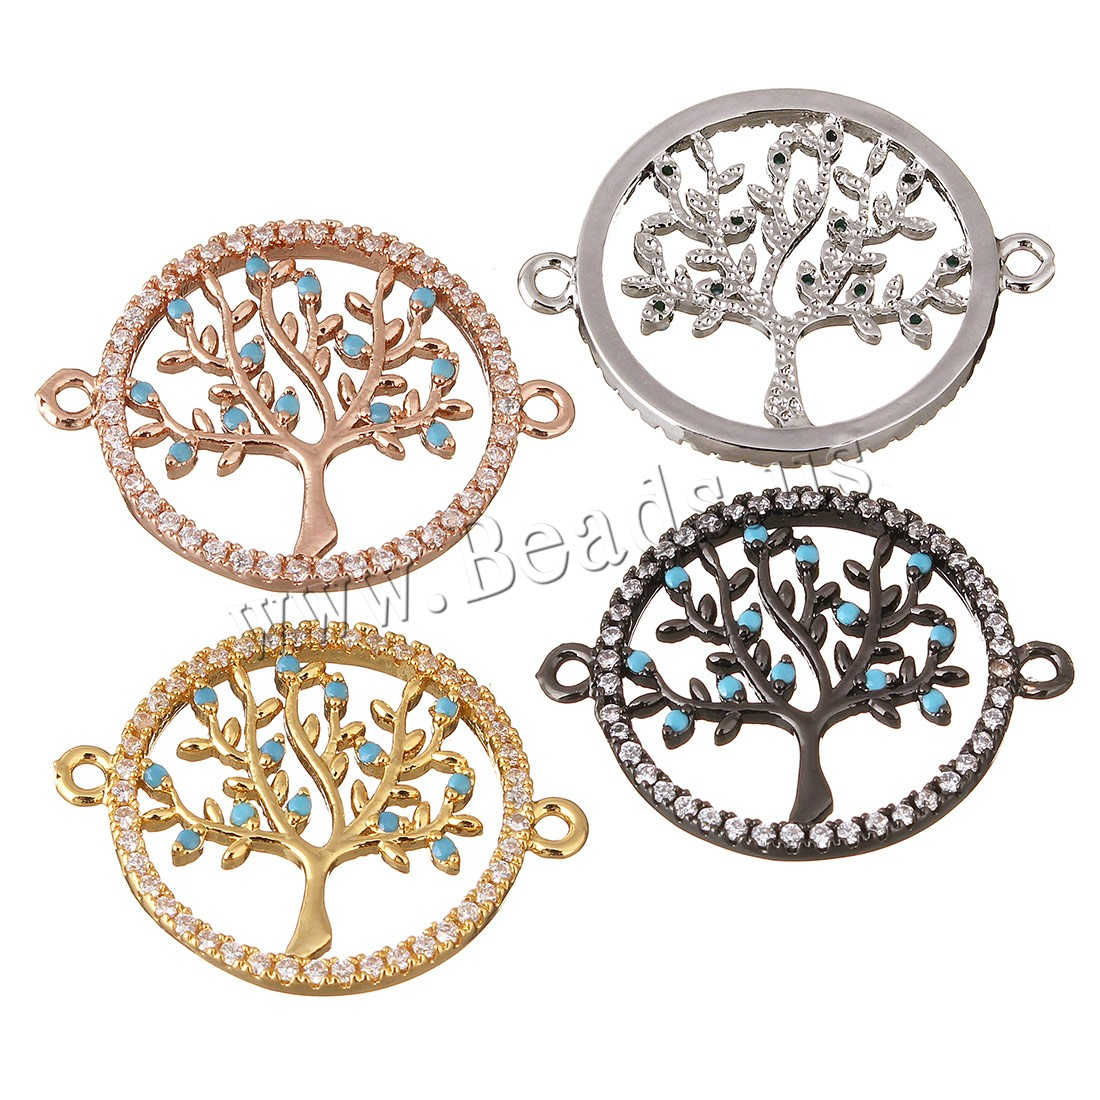 Buy Brass Jewelry Connector Tree plated micro pave cubic zirconia & 1/1 loop colors choice 25x20x2mm Hole:Approx 1mm 1 Sold Lot